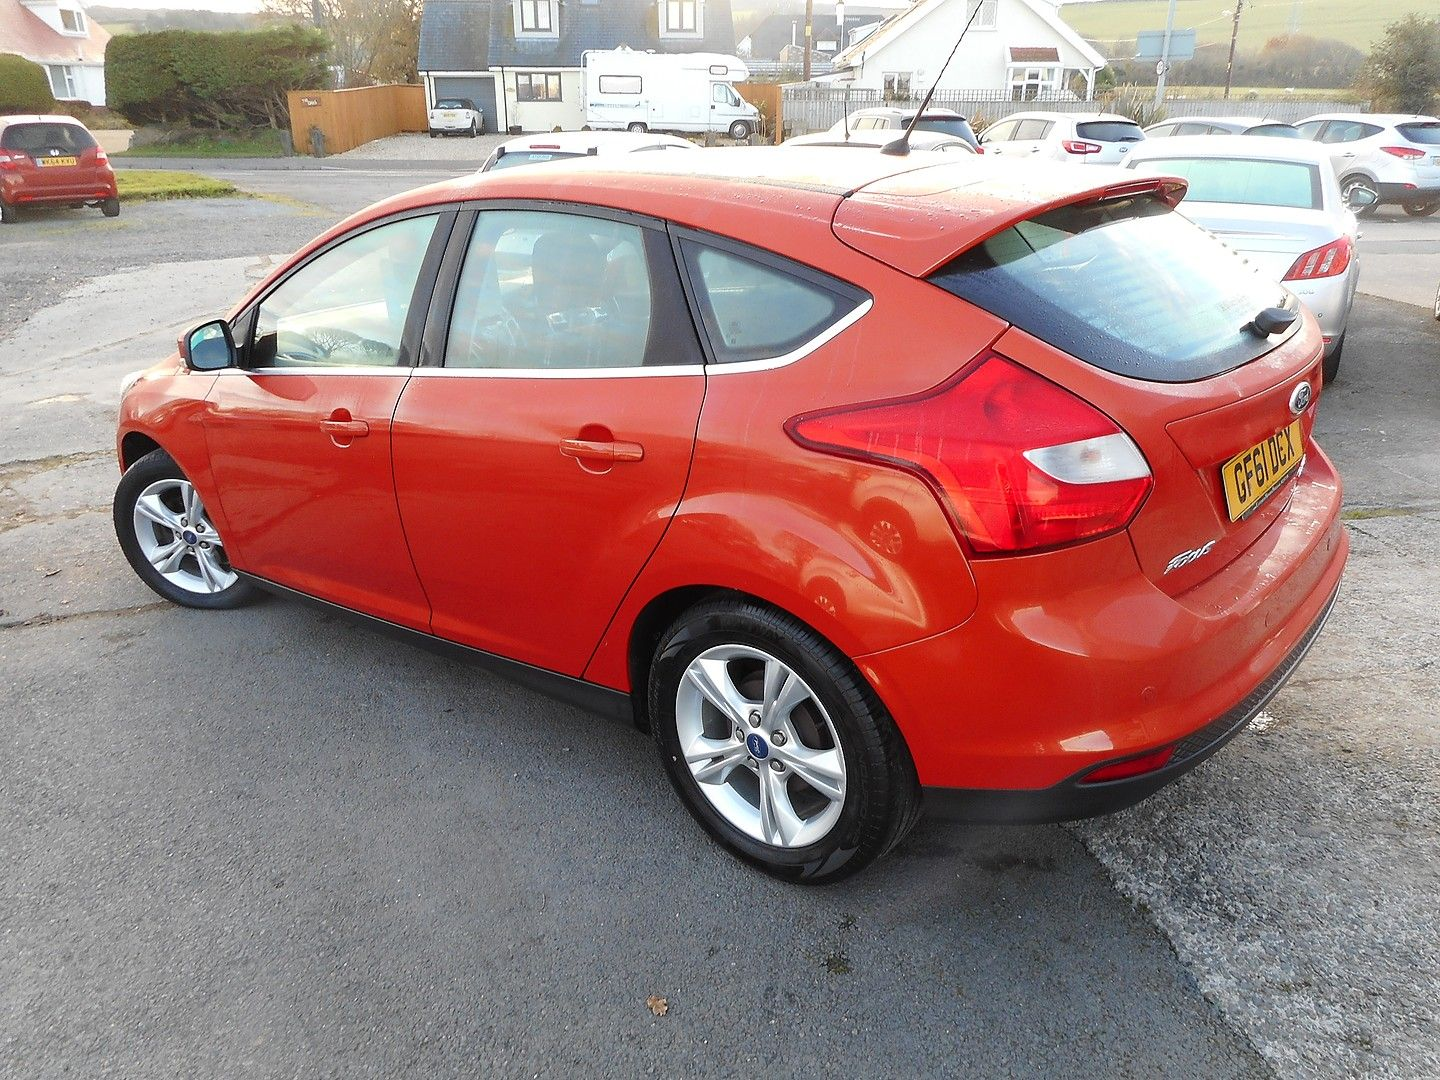 FORD Focus 1.6 Zetec Auto (2011) - Picture 4